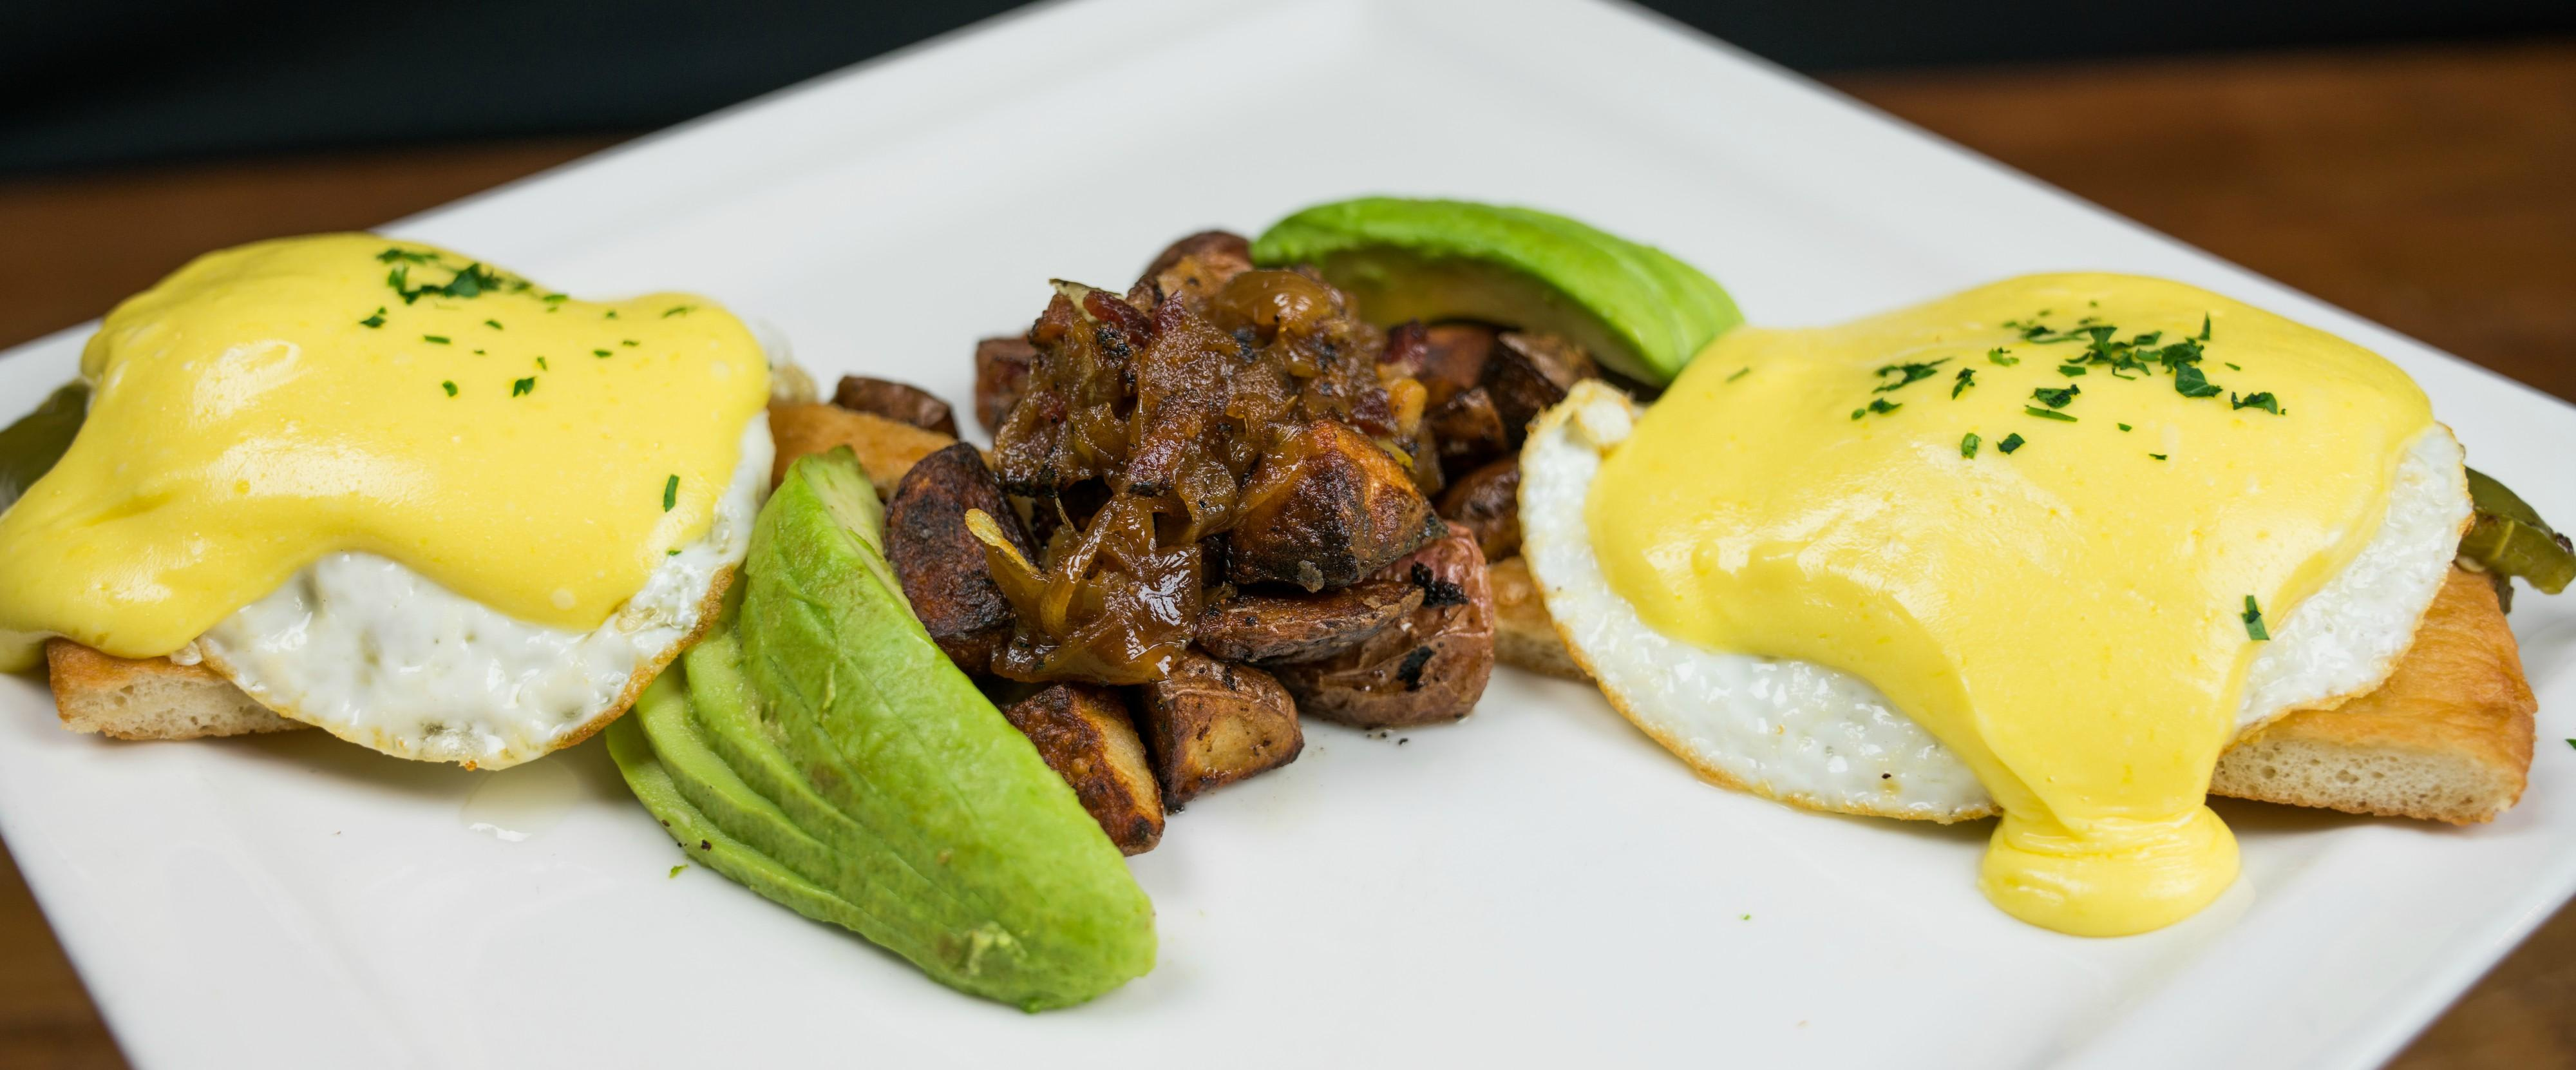 TB&G Benedict Poached eggs, jalapeño bacon, roasted green chilies, and avocado, served on Indian fry bread with hollandaise, roasted potatoes with bacon and caramelized onions at Tonto Bar & Grill